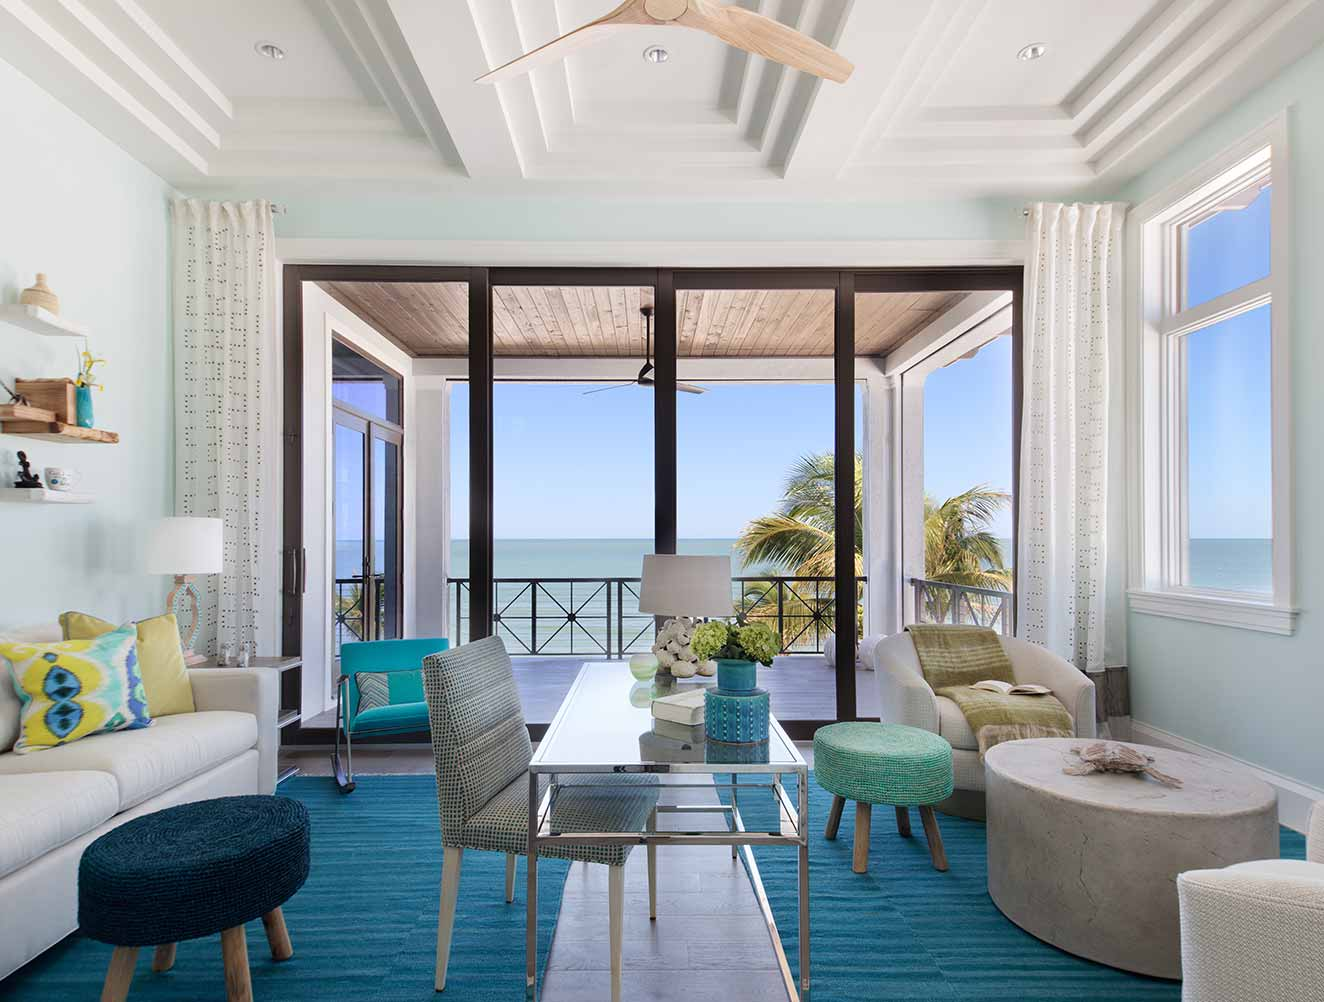 Ceiling Design Collection in Naples Florida homes. Designed by Kukk Architecture & Design Naples.